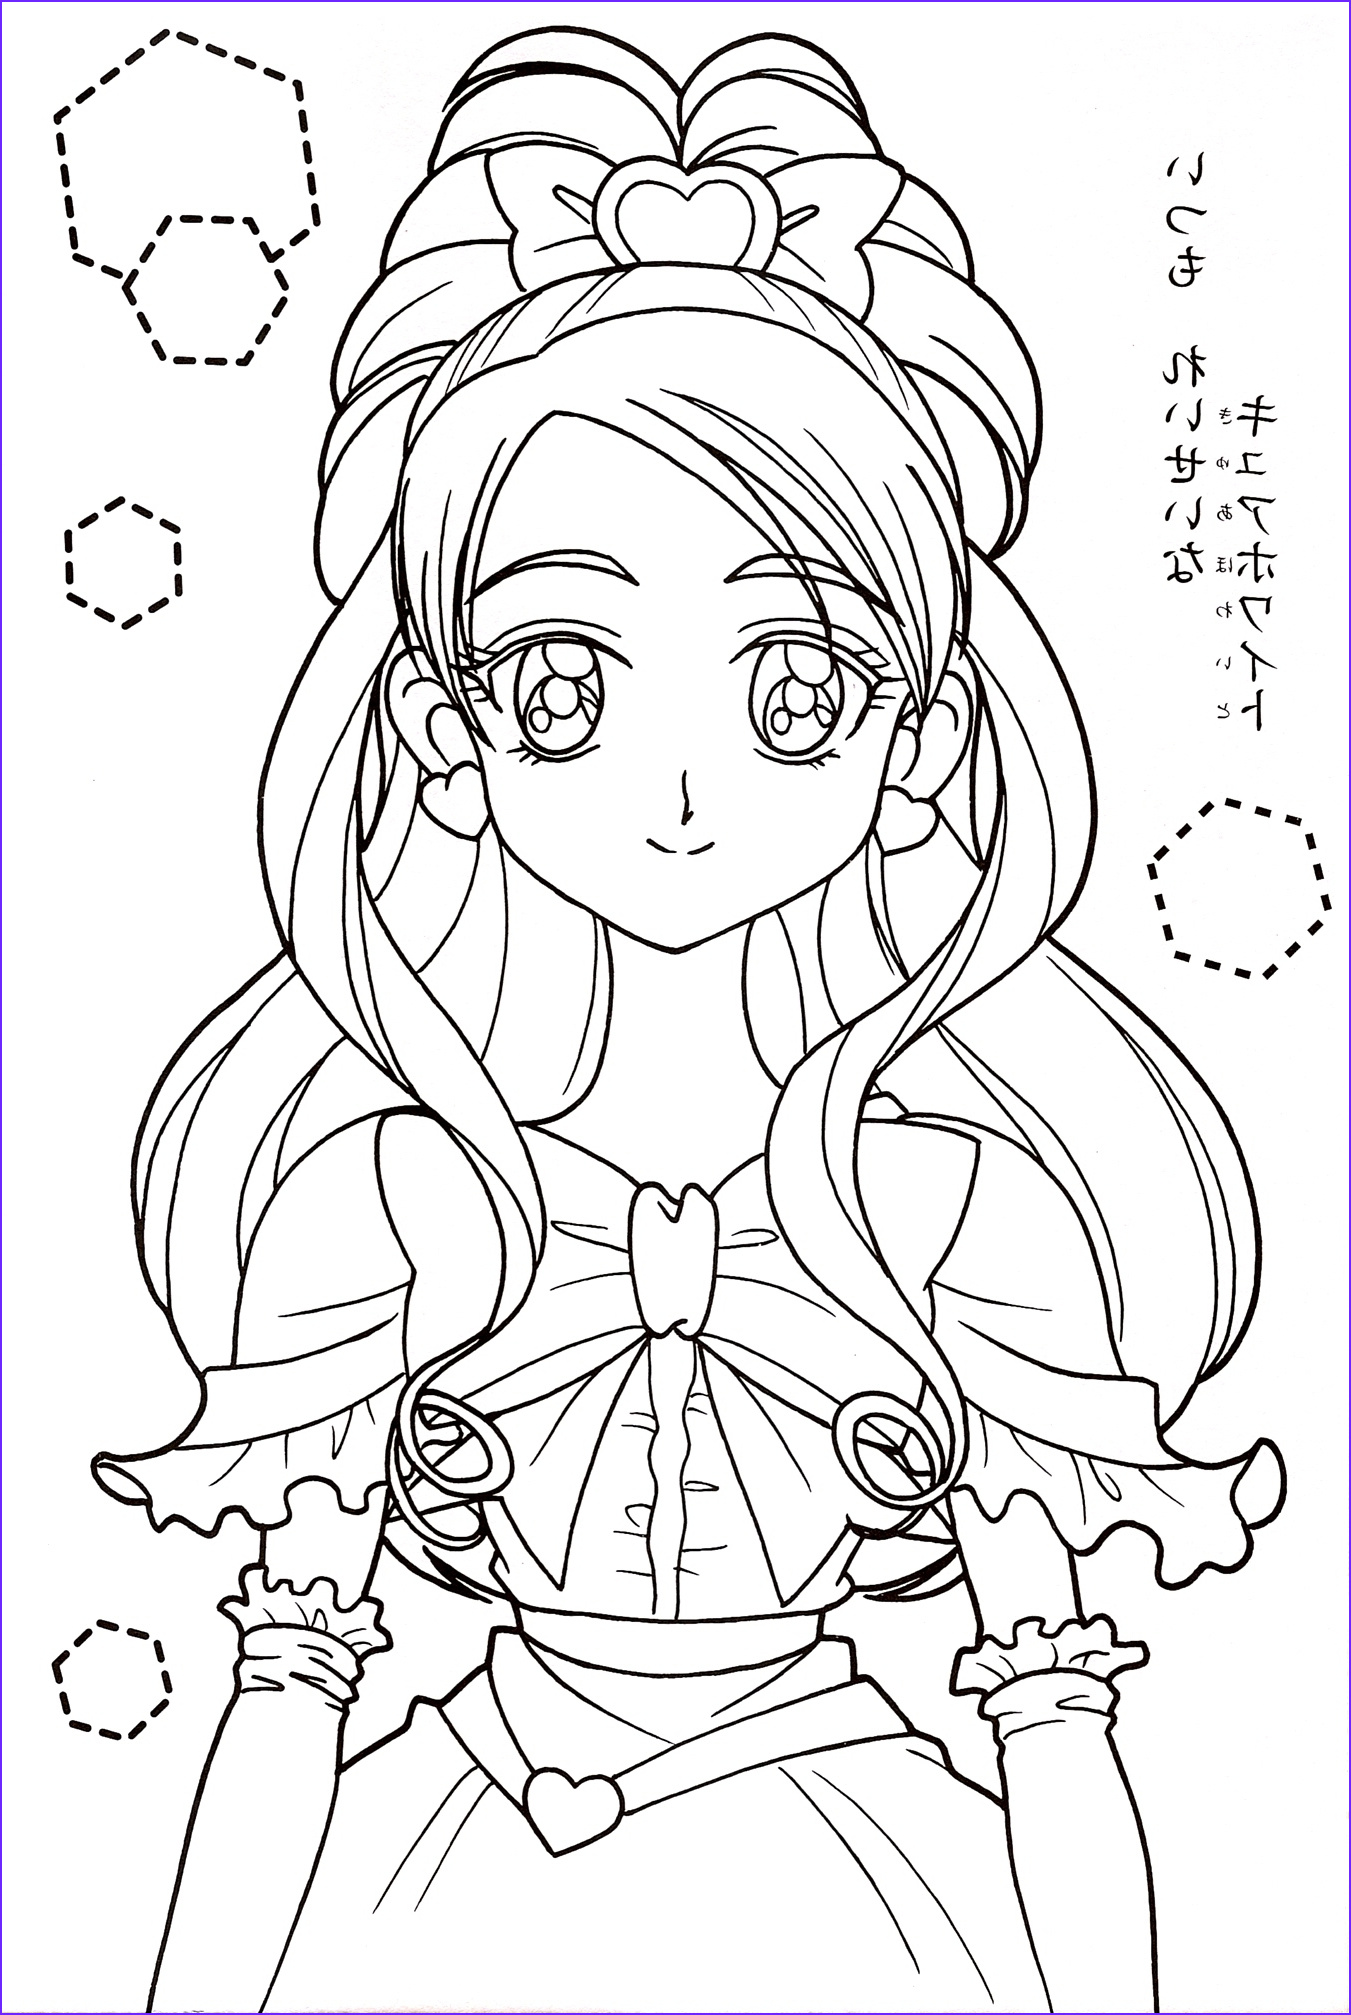 Precure Coloring Page Luxury Image Pretty Cure Coloring Book